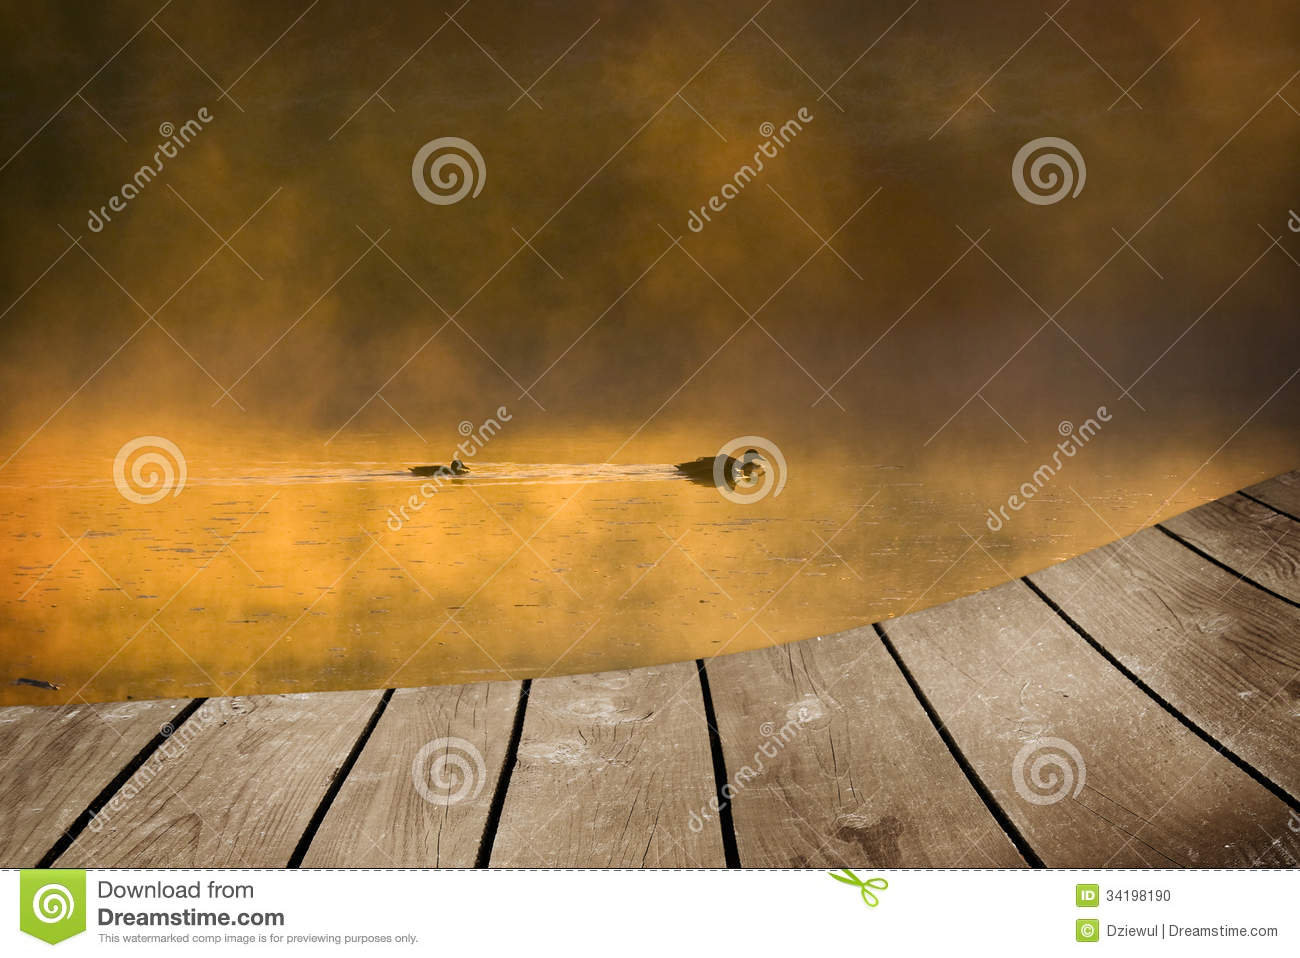 a483c3534 Mallard Duck And Baby And Empty Wooden Deck Table. Stock Photo ...